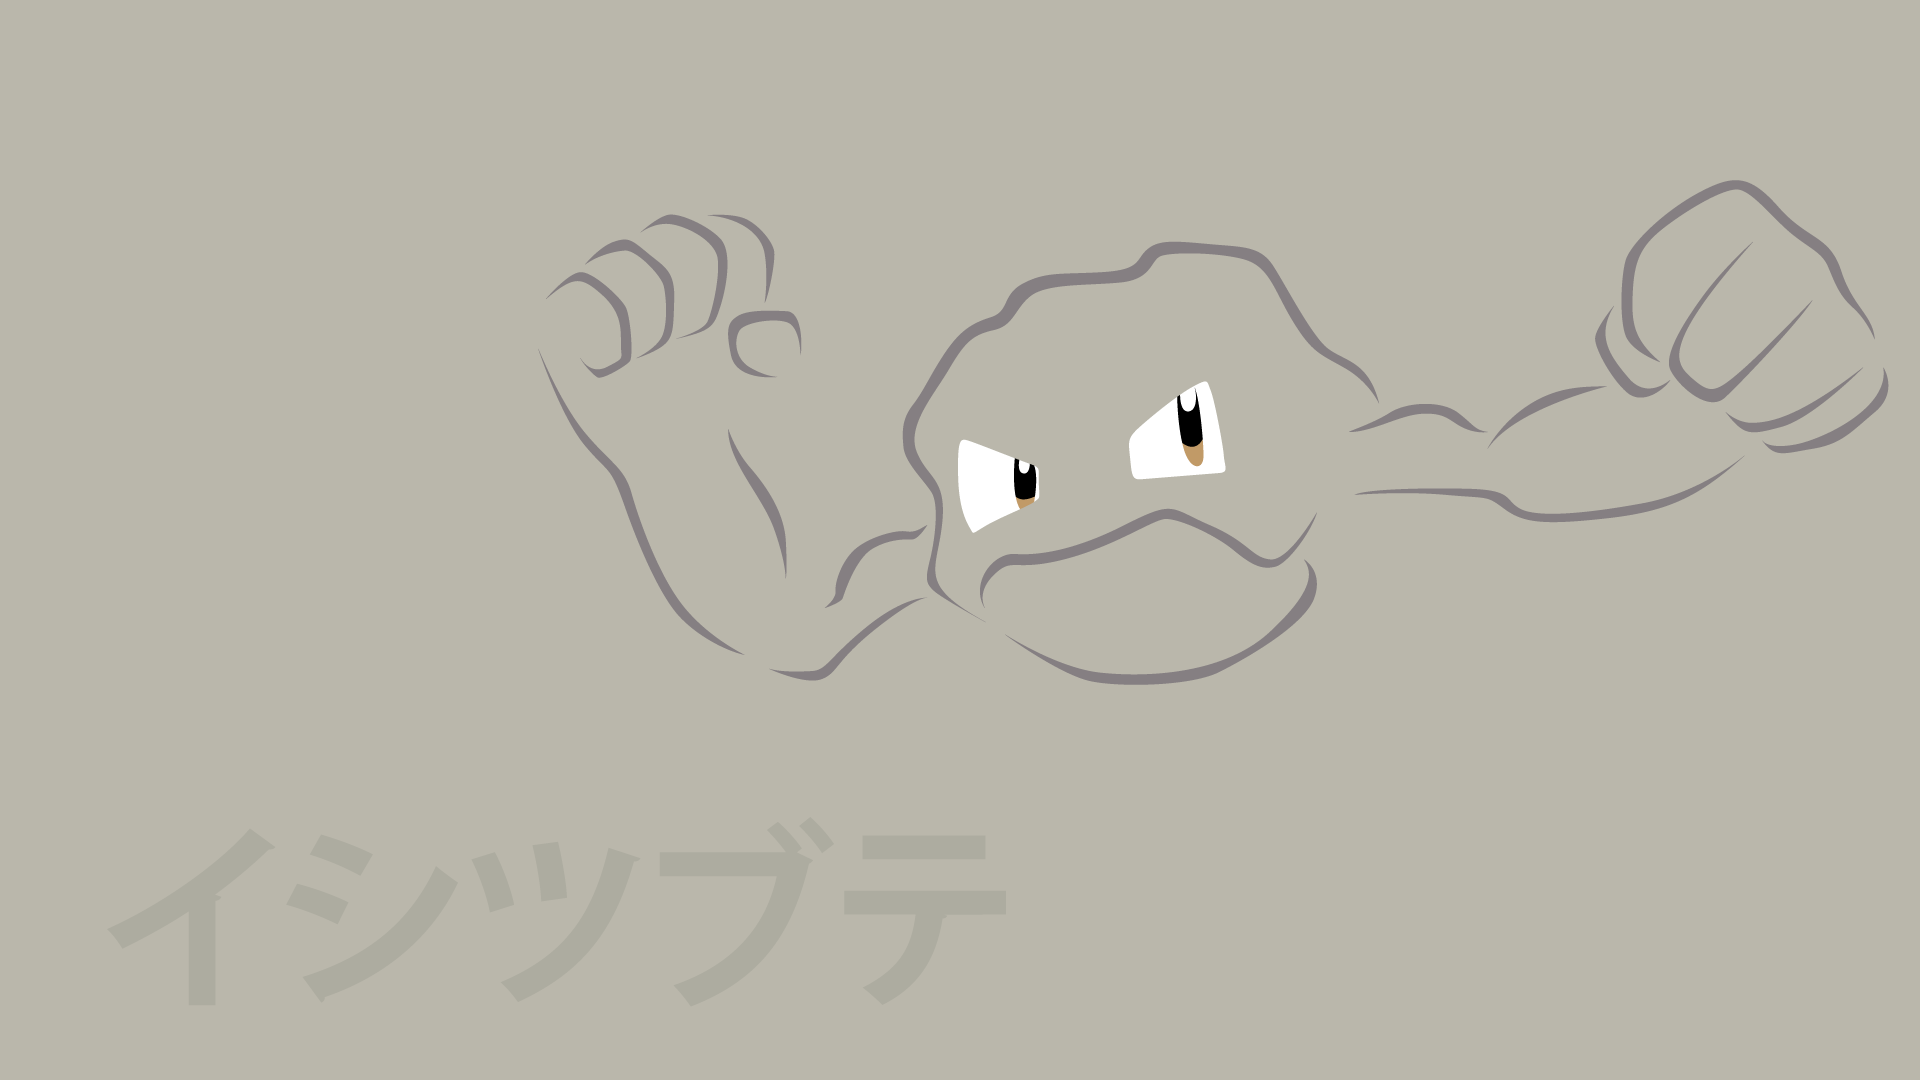 Geodude by DannyMyBrother on DeviantArt